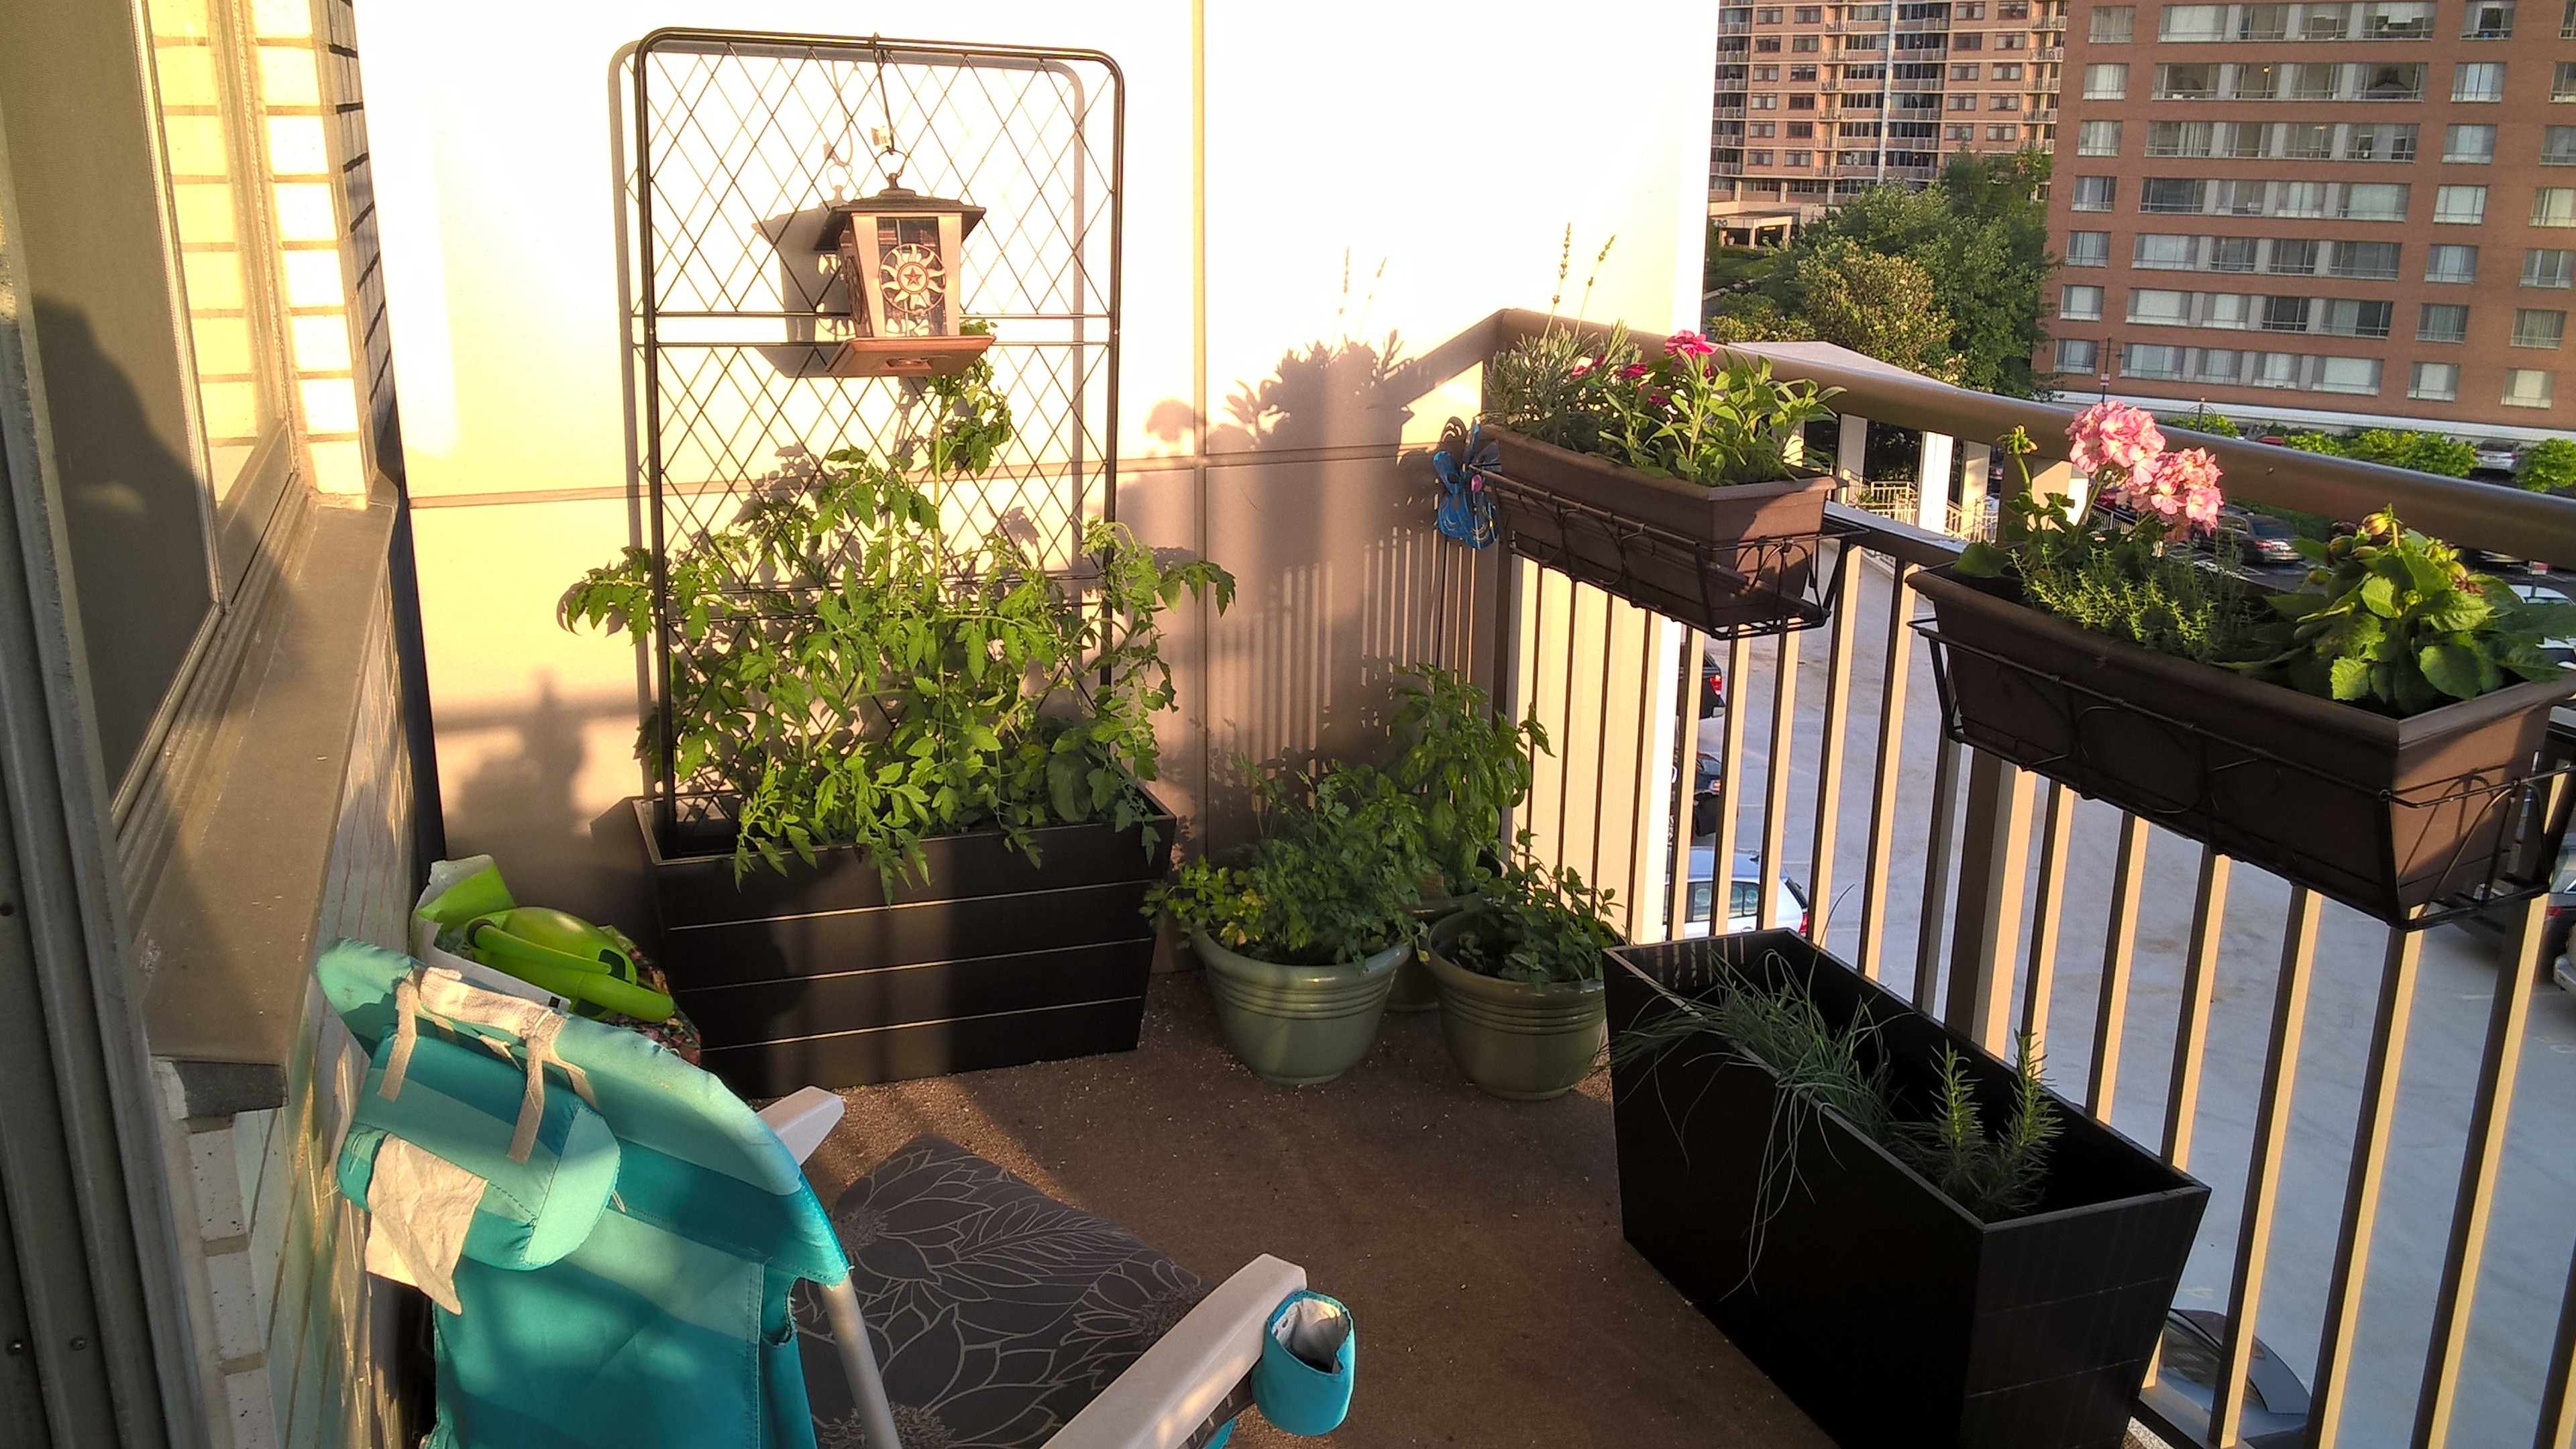 Welling up my space – Balcony